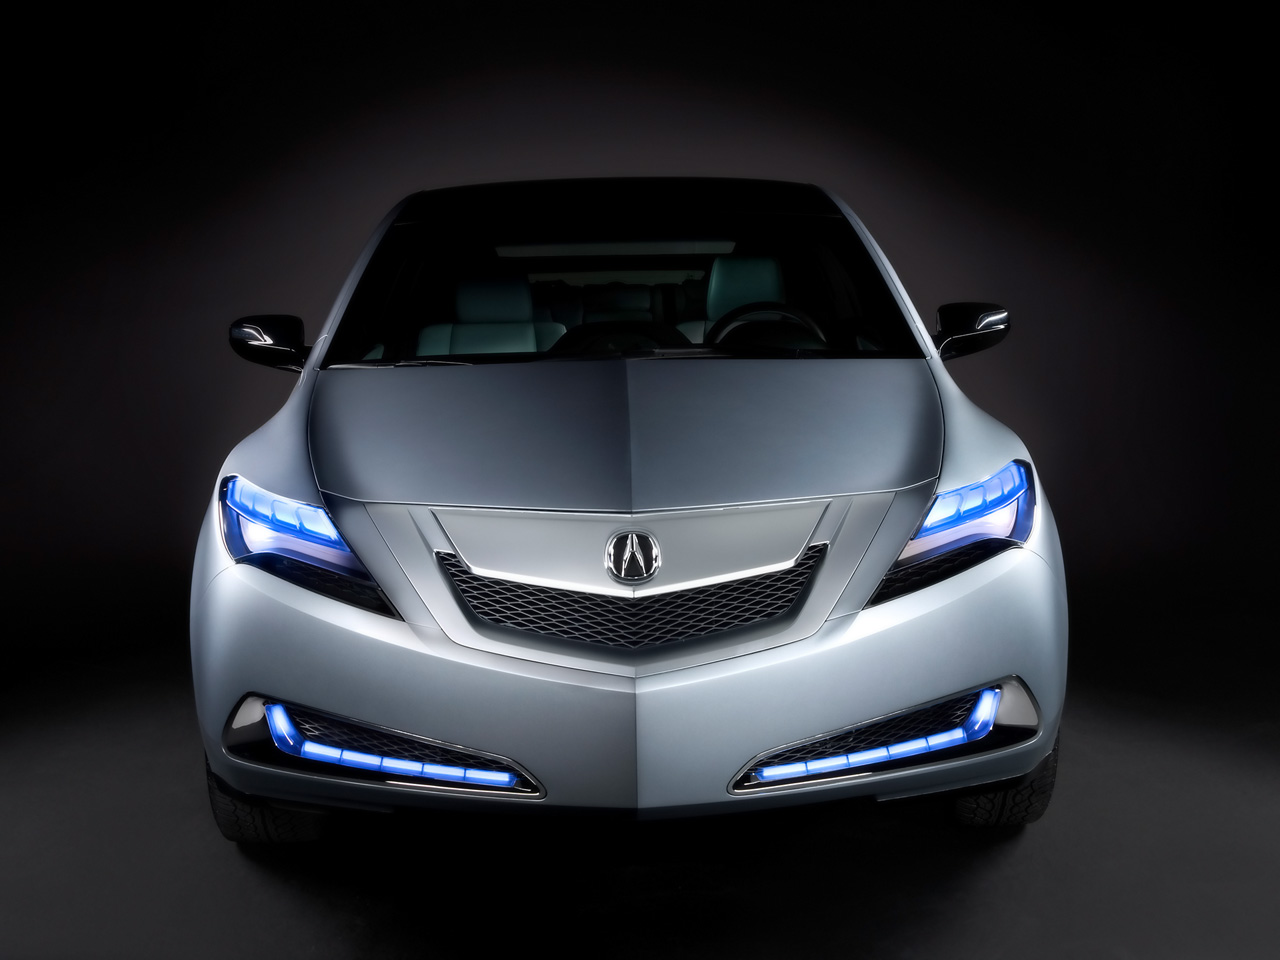 Cool Acura Wallpaper